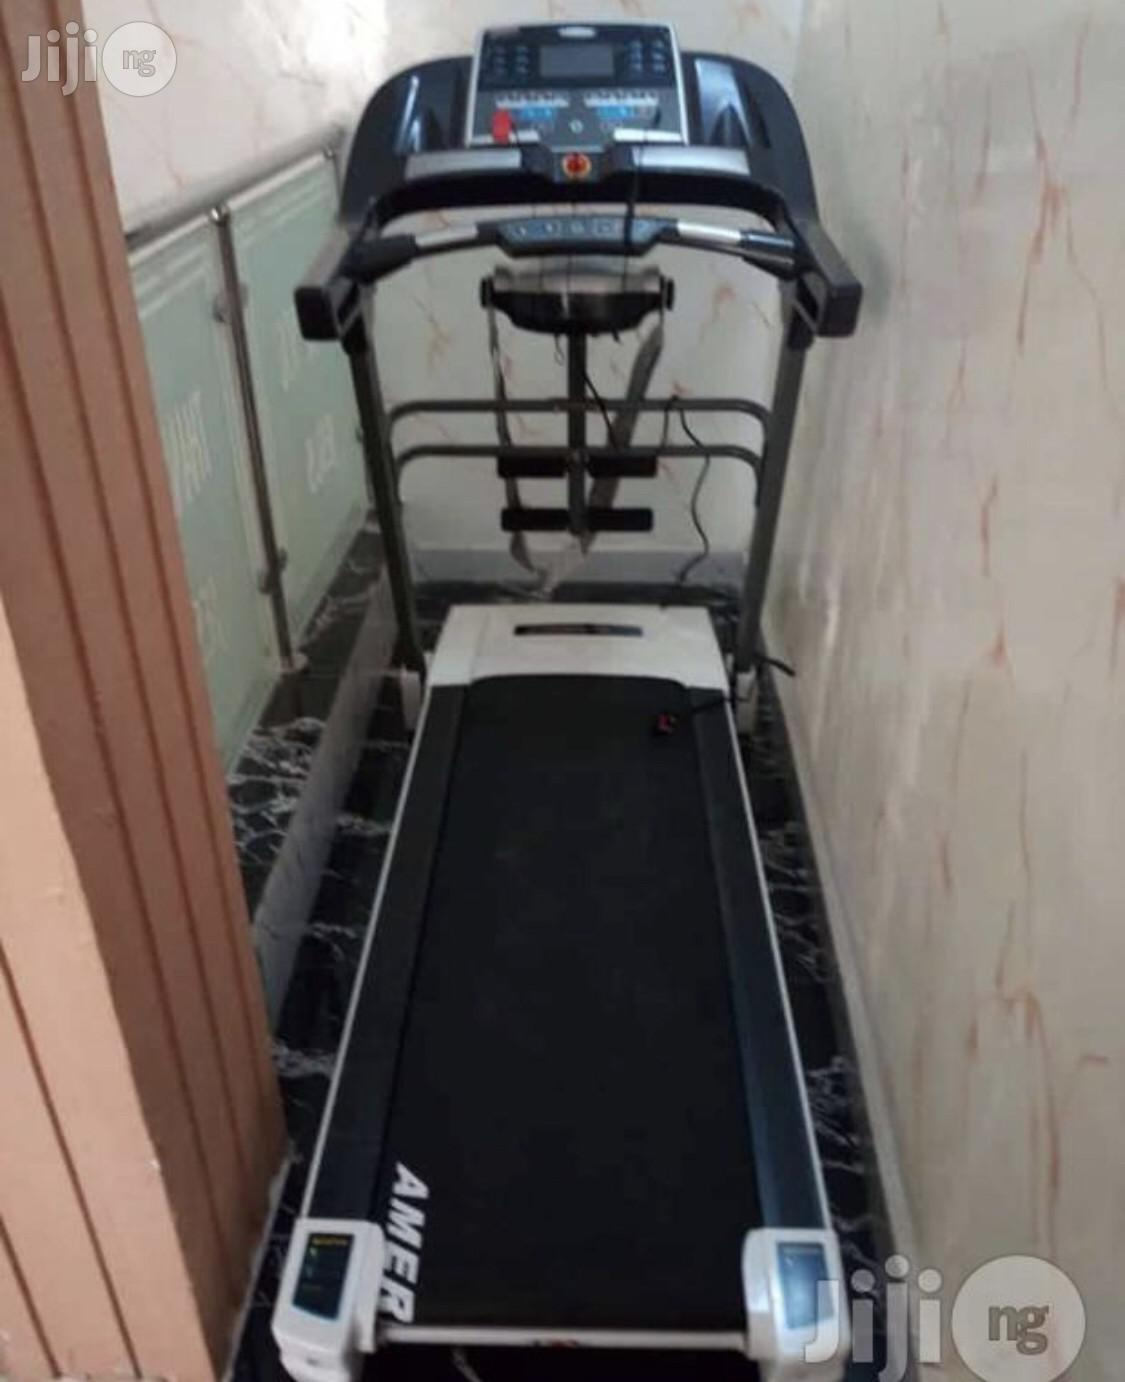 2.5hp Treadmll With Massager (American Fitness)